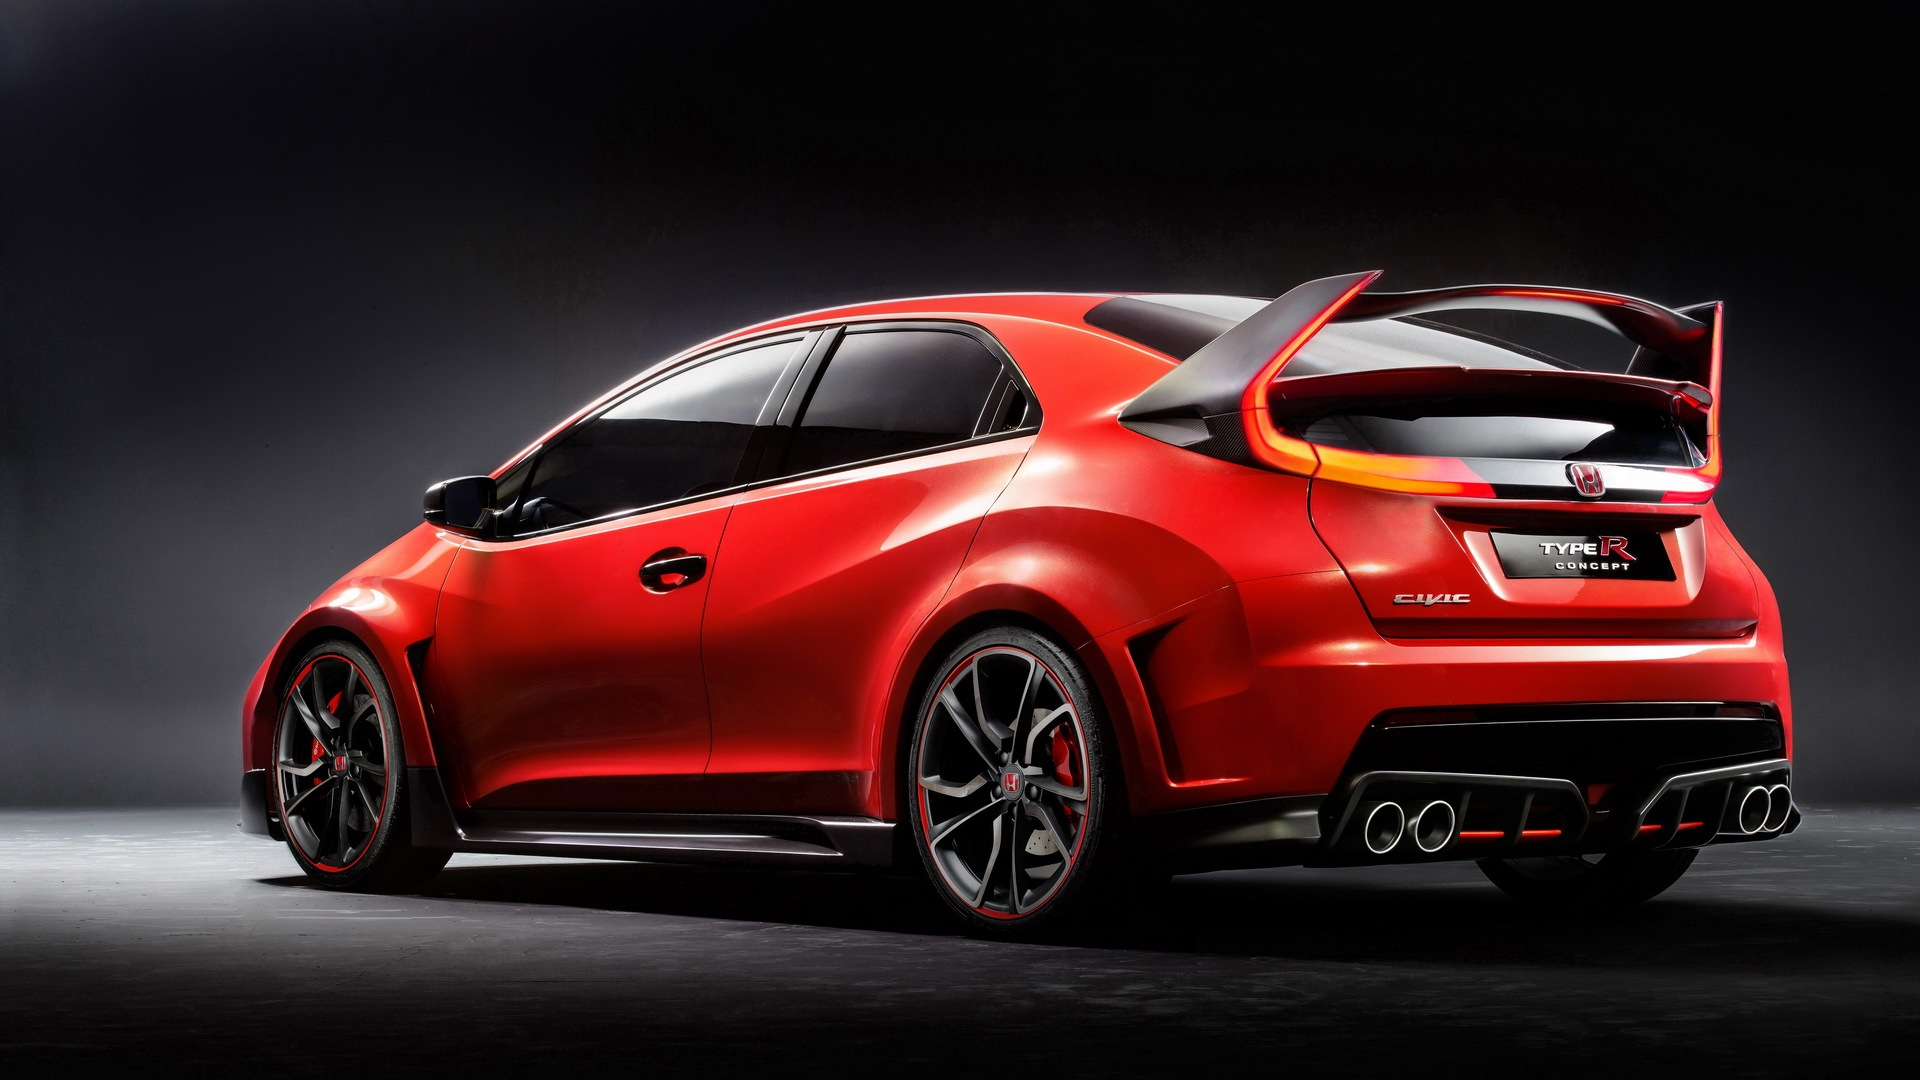 Honda Civic Type R Concept photos and wallpapers 1920x1080